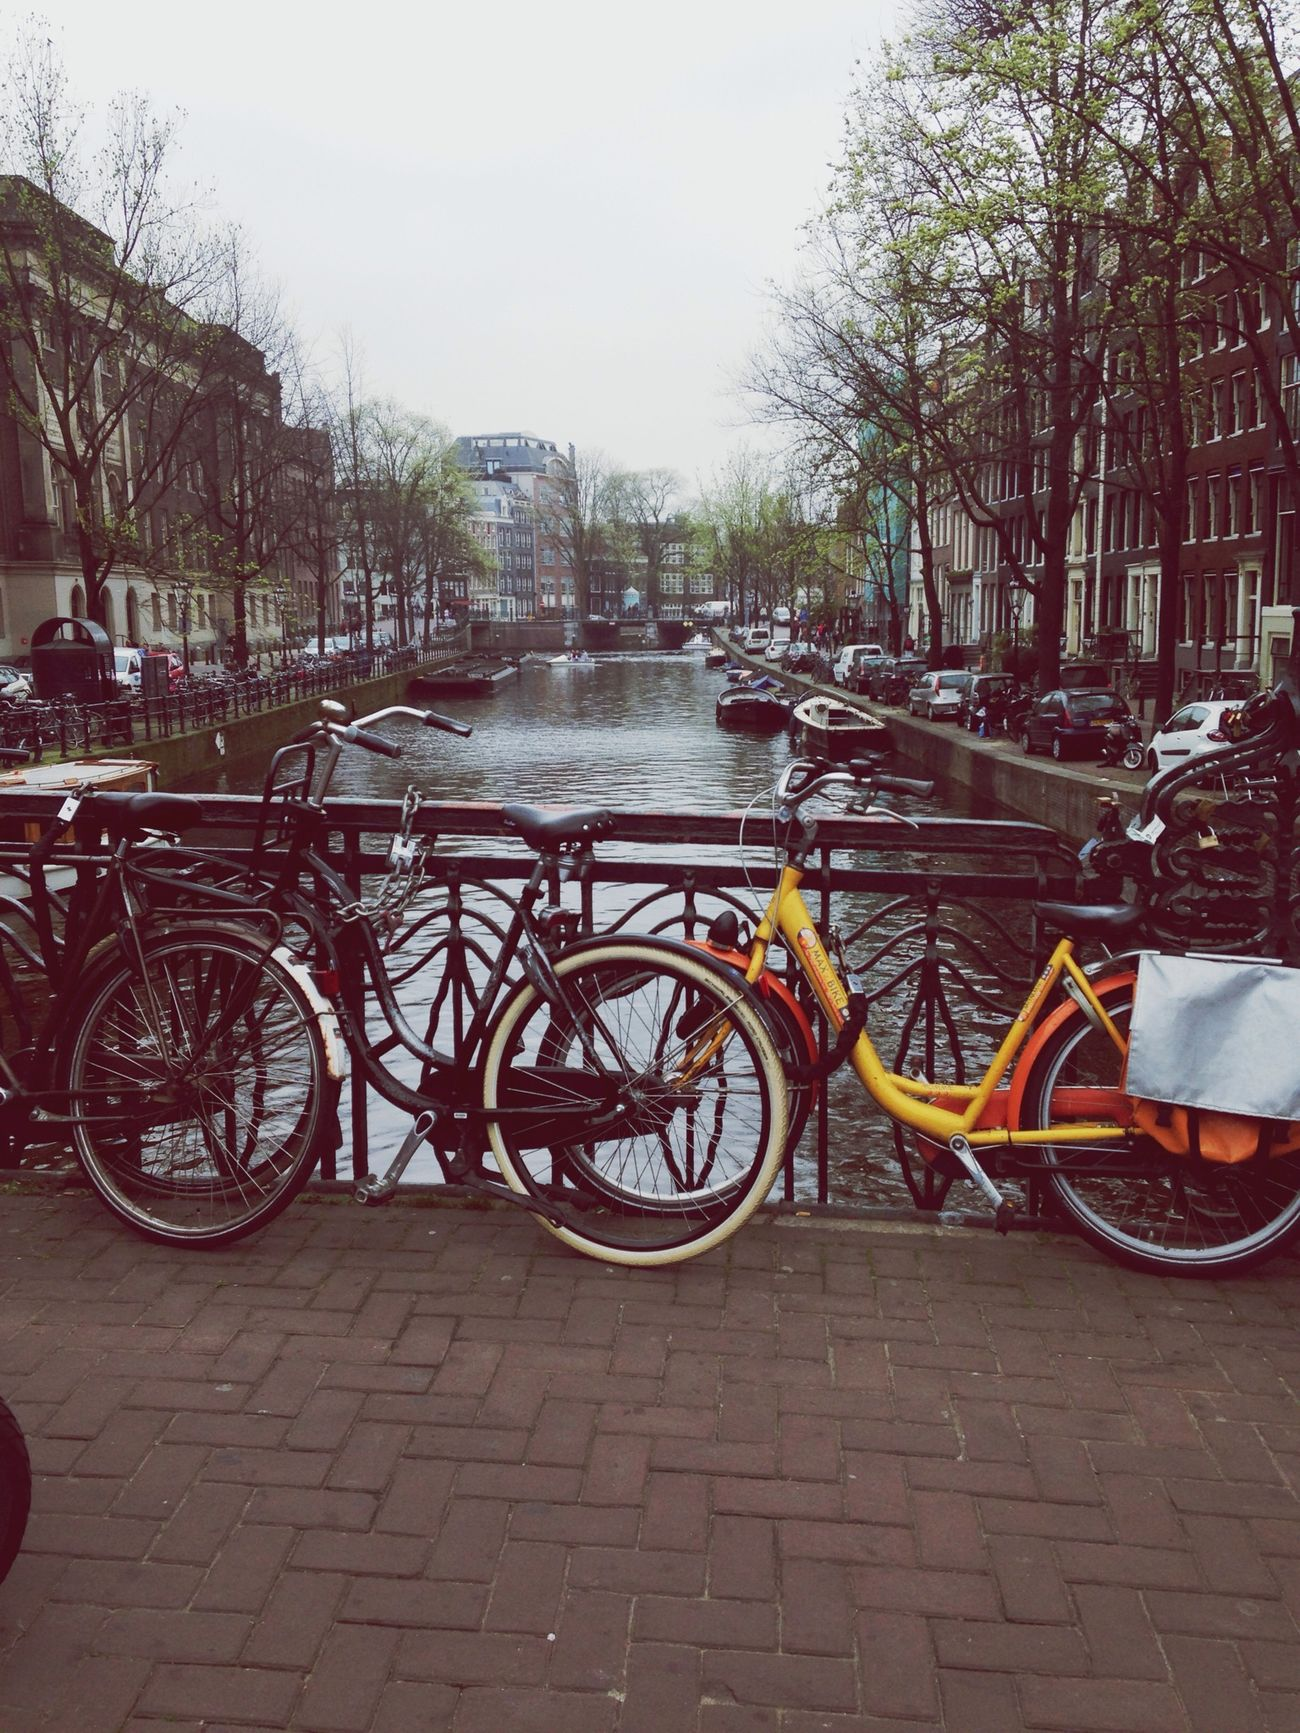 Bikes Outdoors in Amsterdam Water